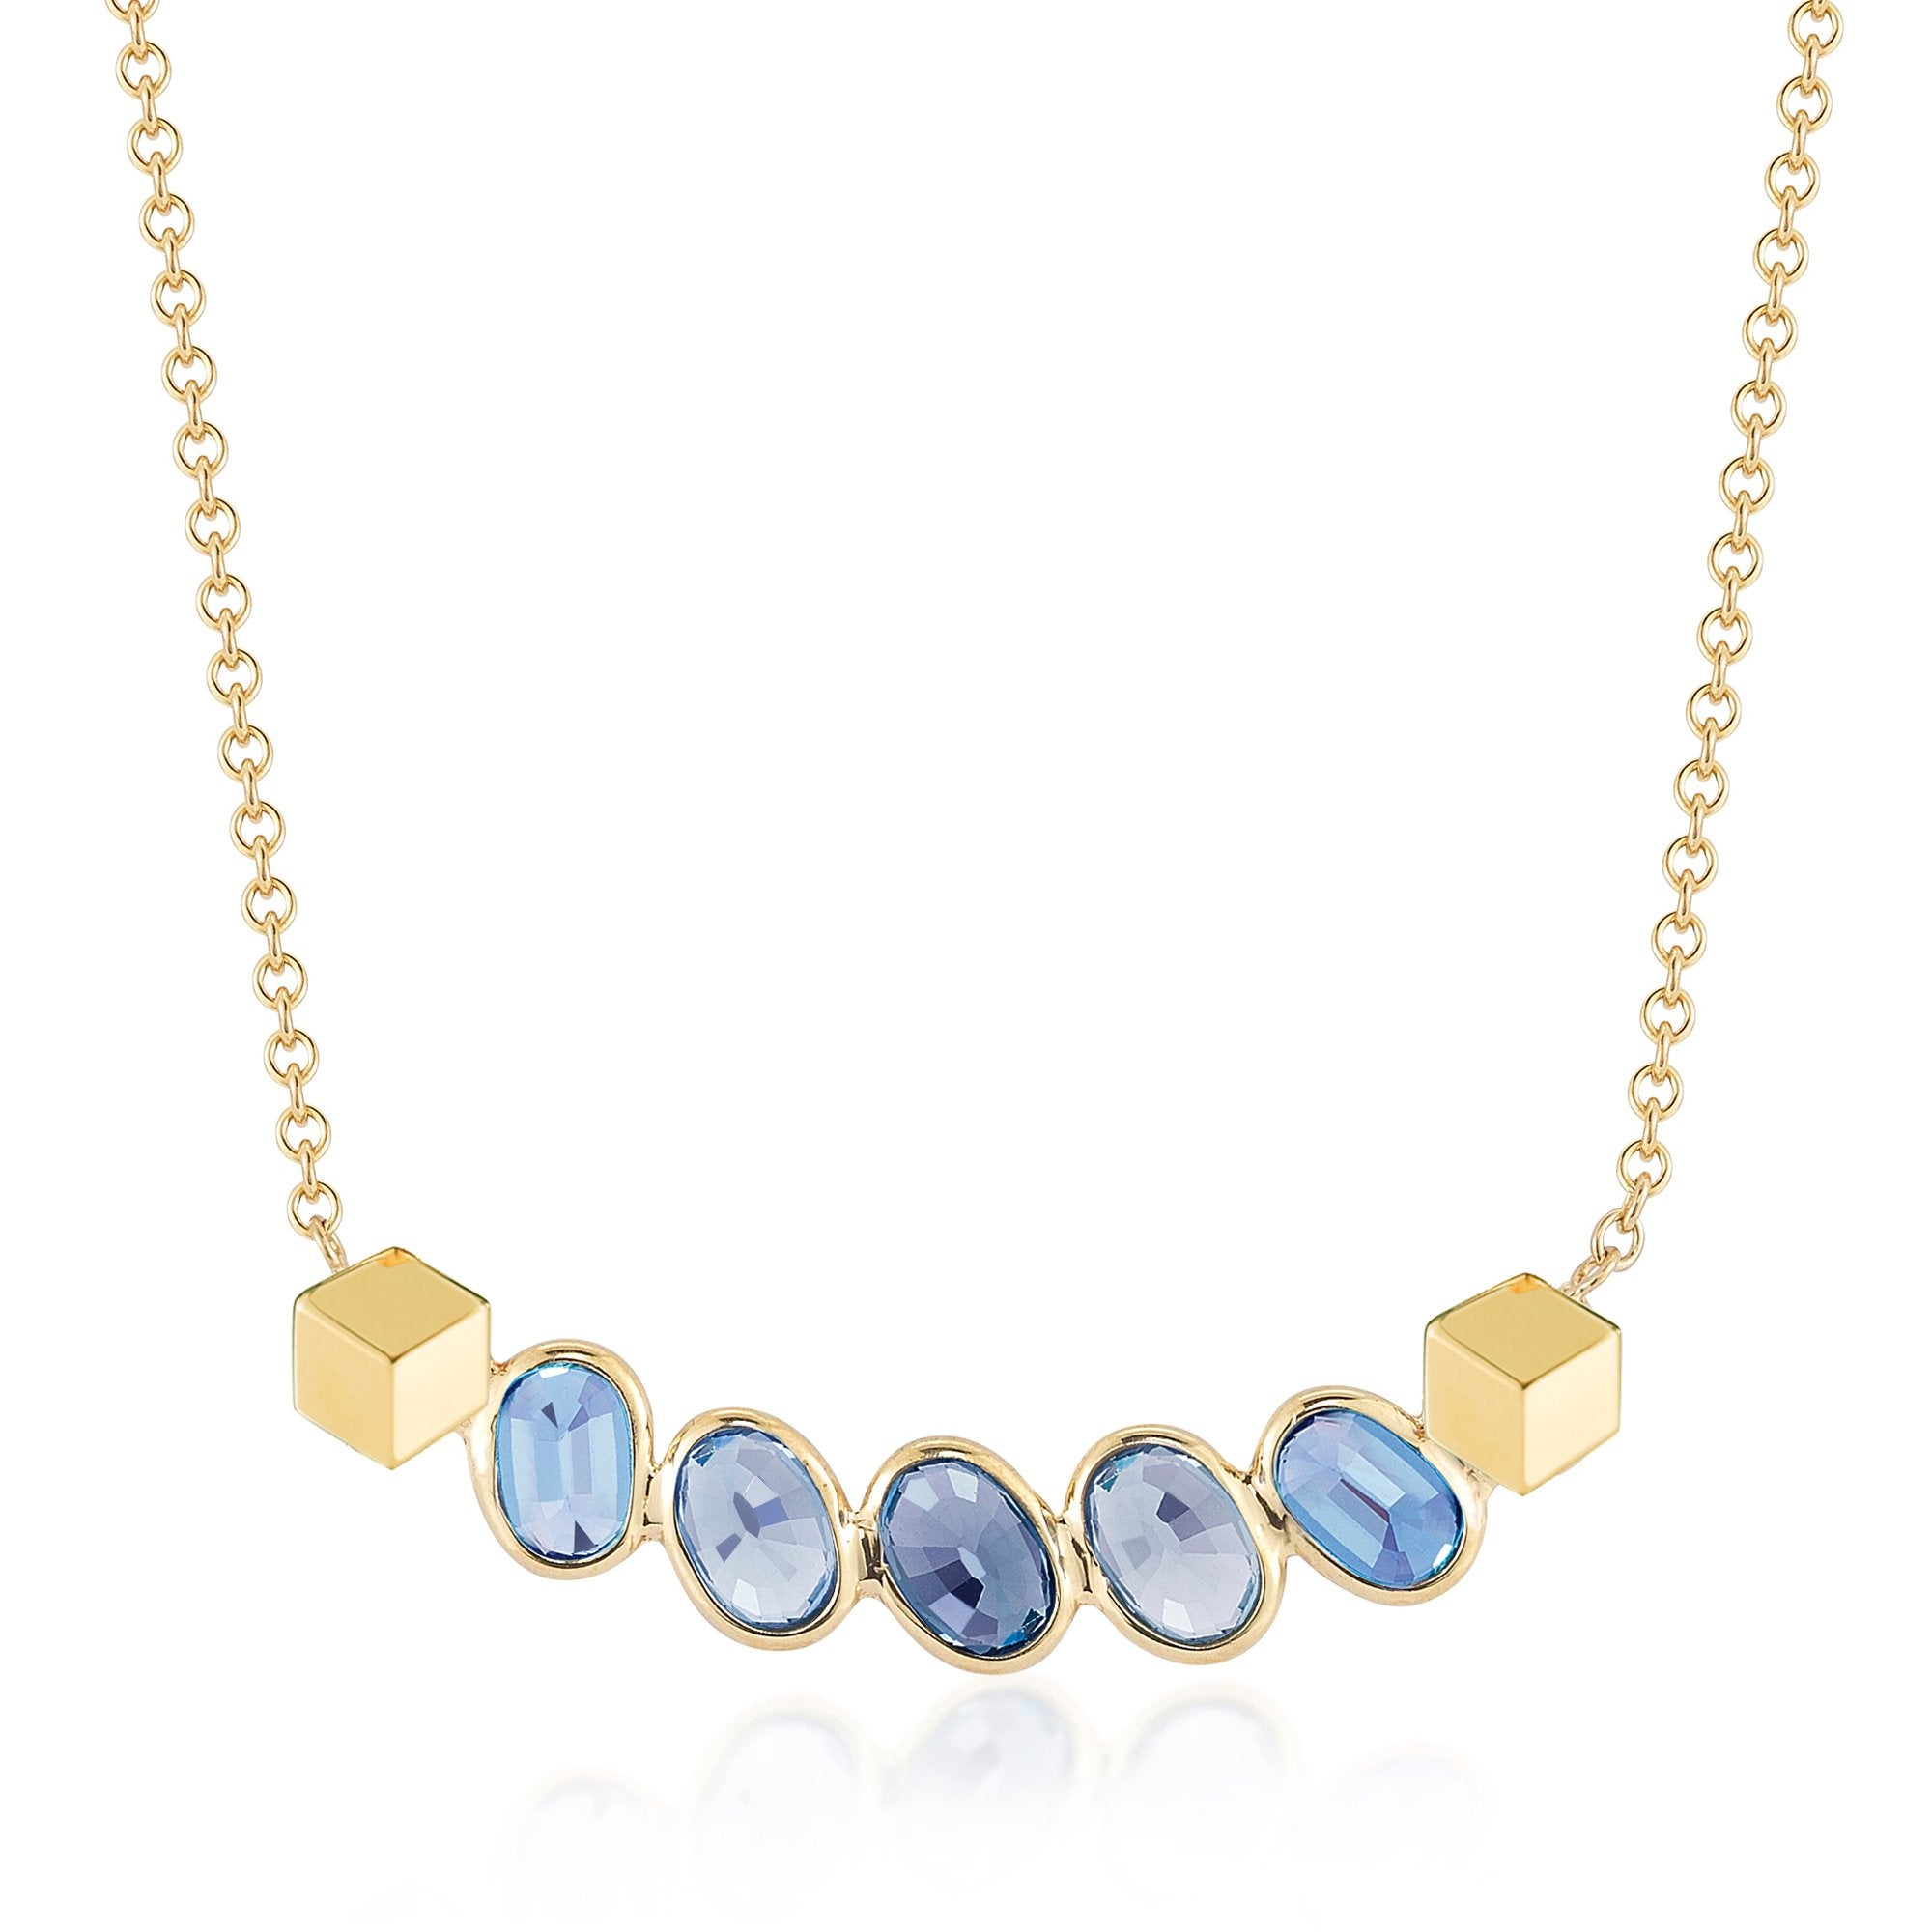 jewelers product s pear sapphire necklace pendant anastella friedman